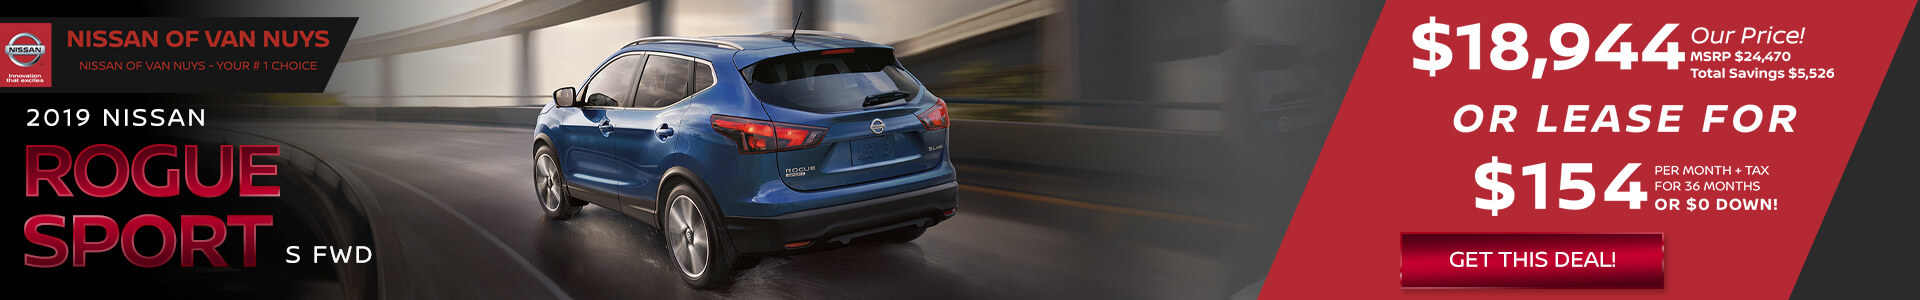 Nissan Rogue Sport - $18,944 Purchase/Lease